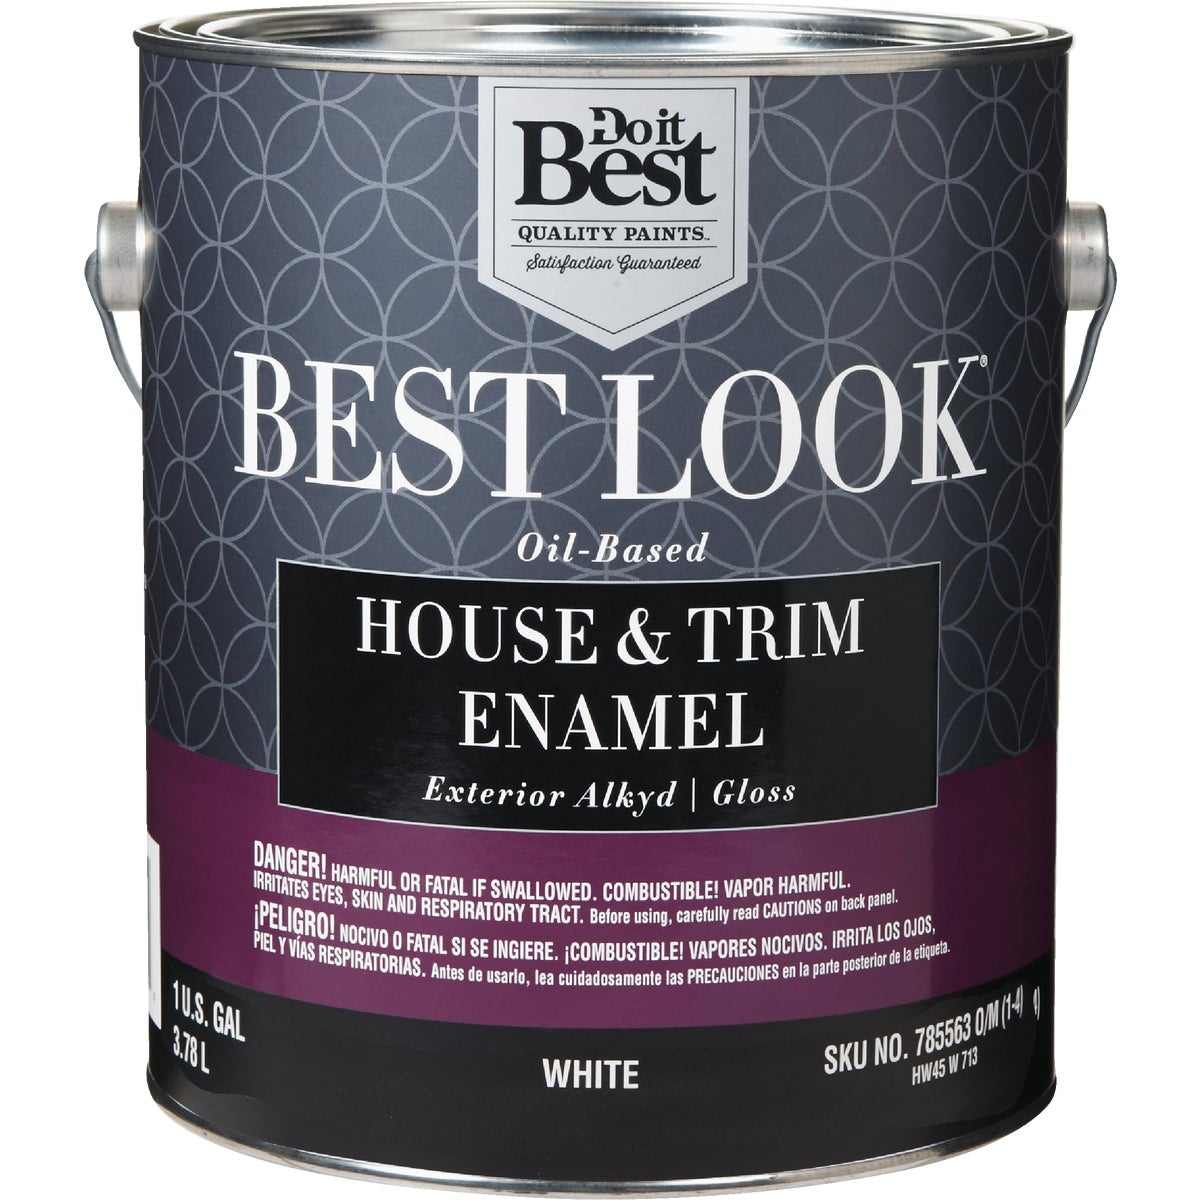 EXT GLOSS WHITE PAINT - HW45W0713-16 by Do it Best